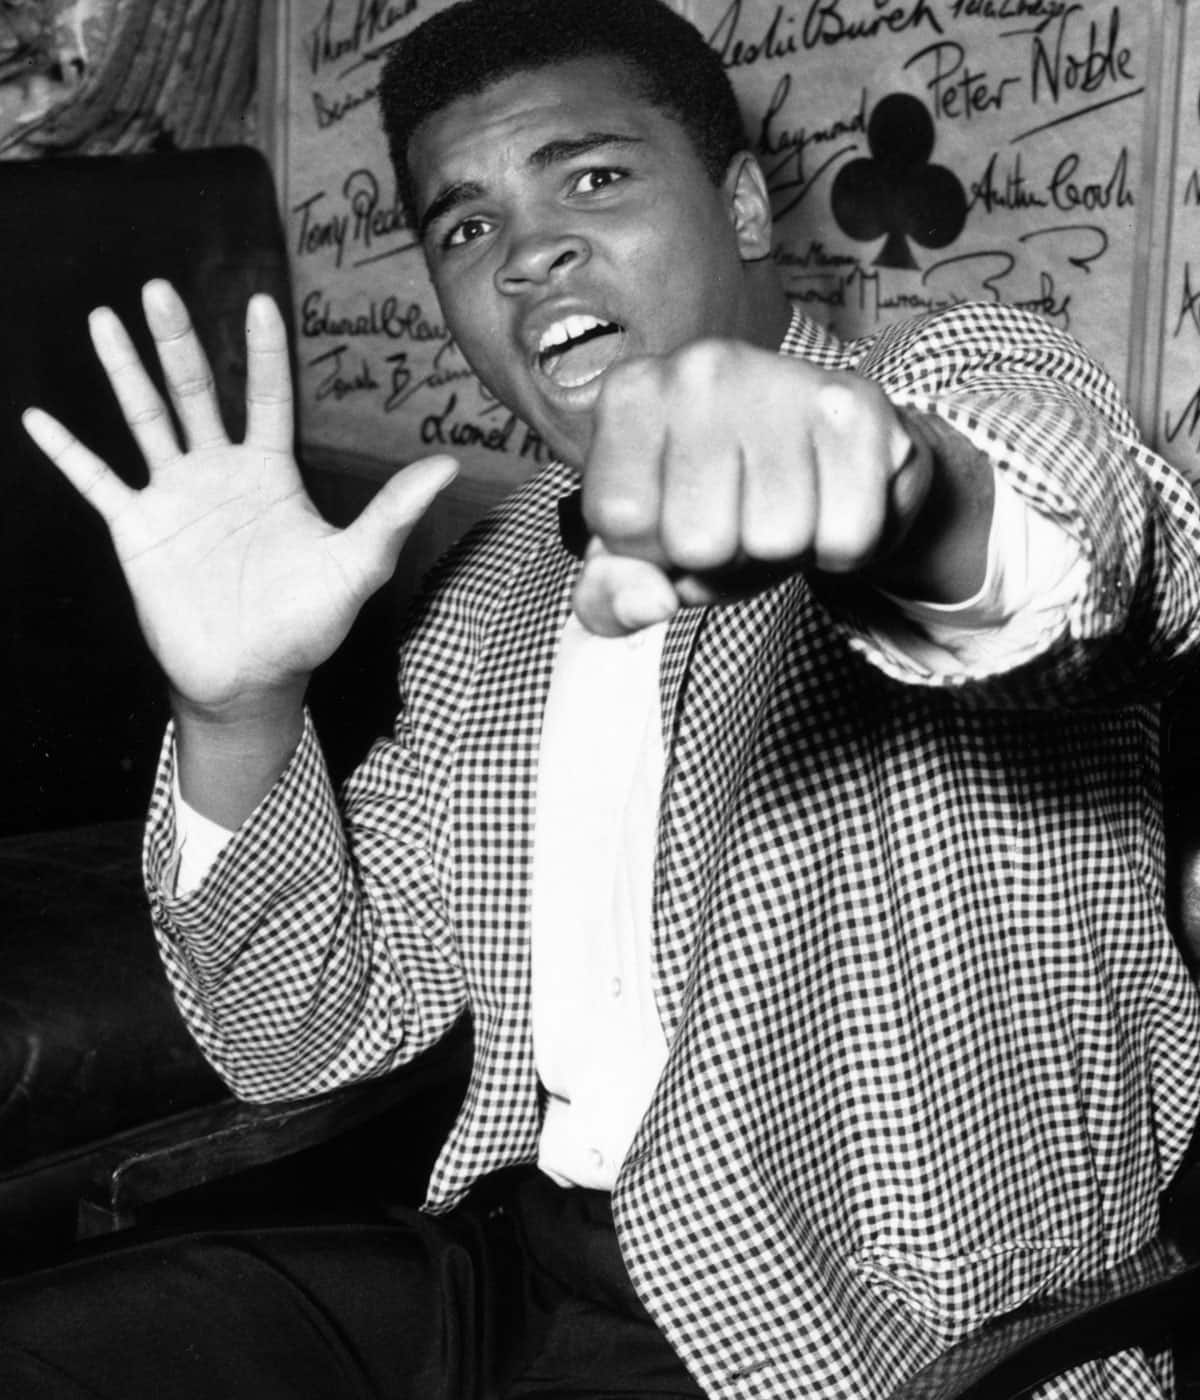 Muhammad Ali's impact went far beyond the boxing ring